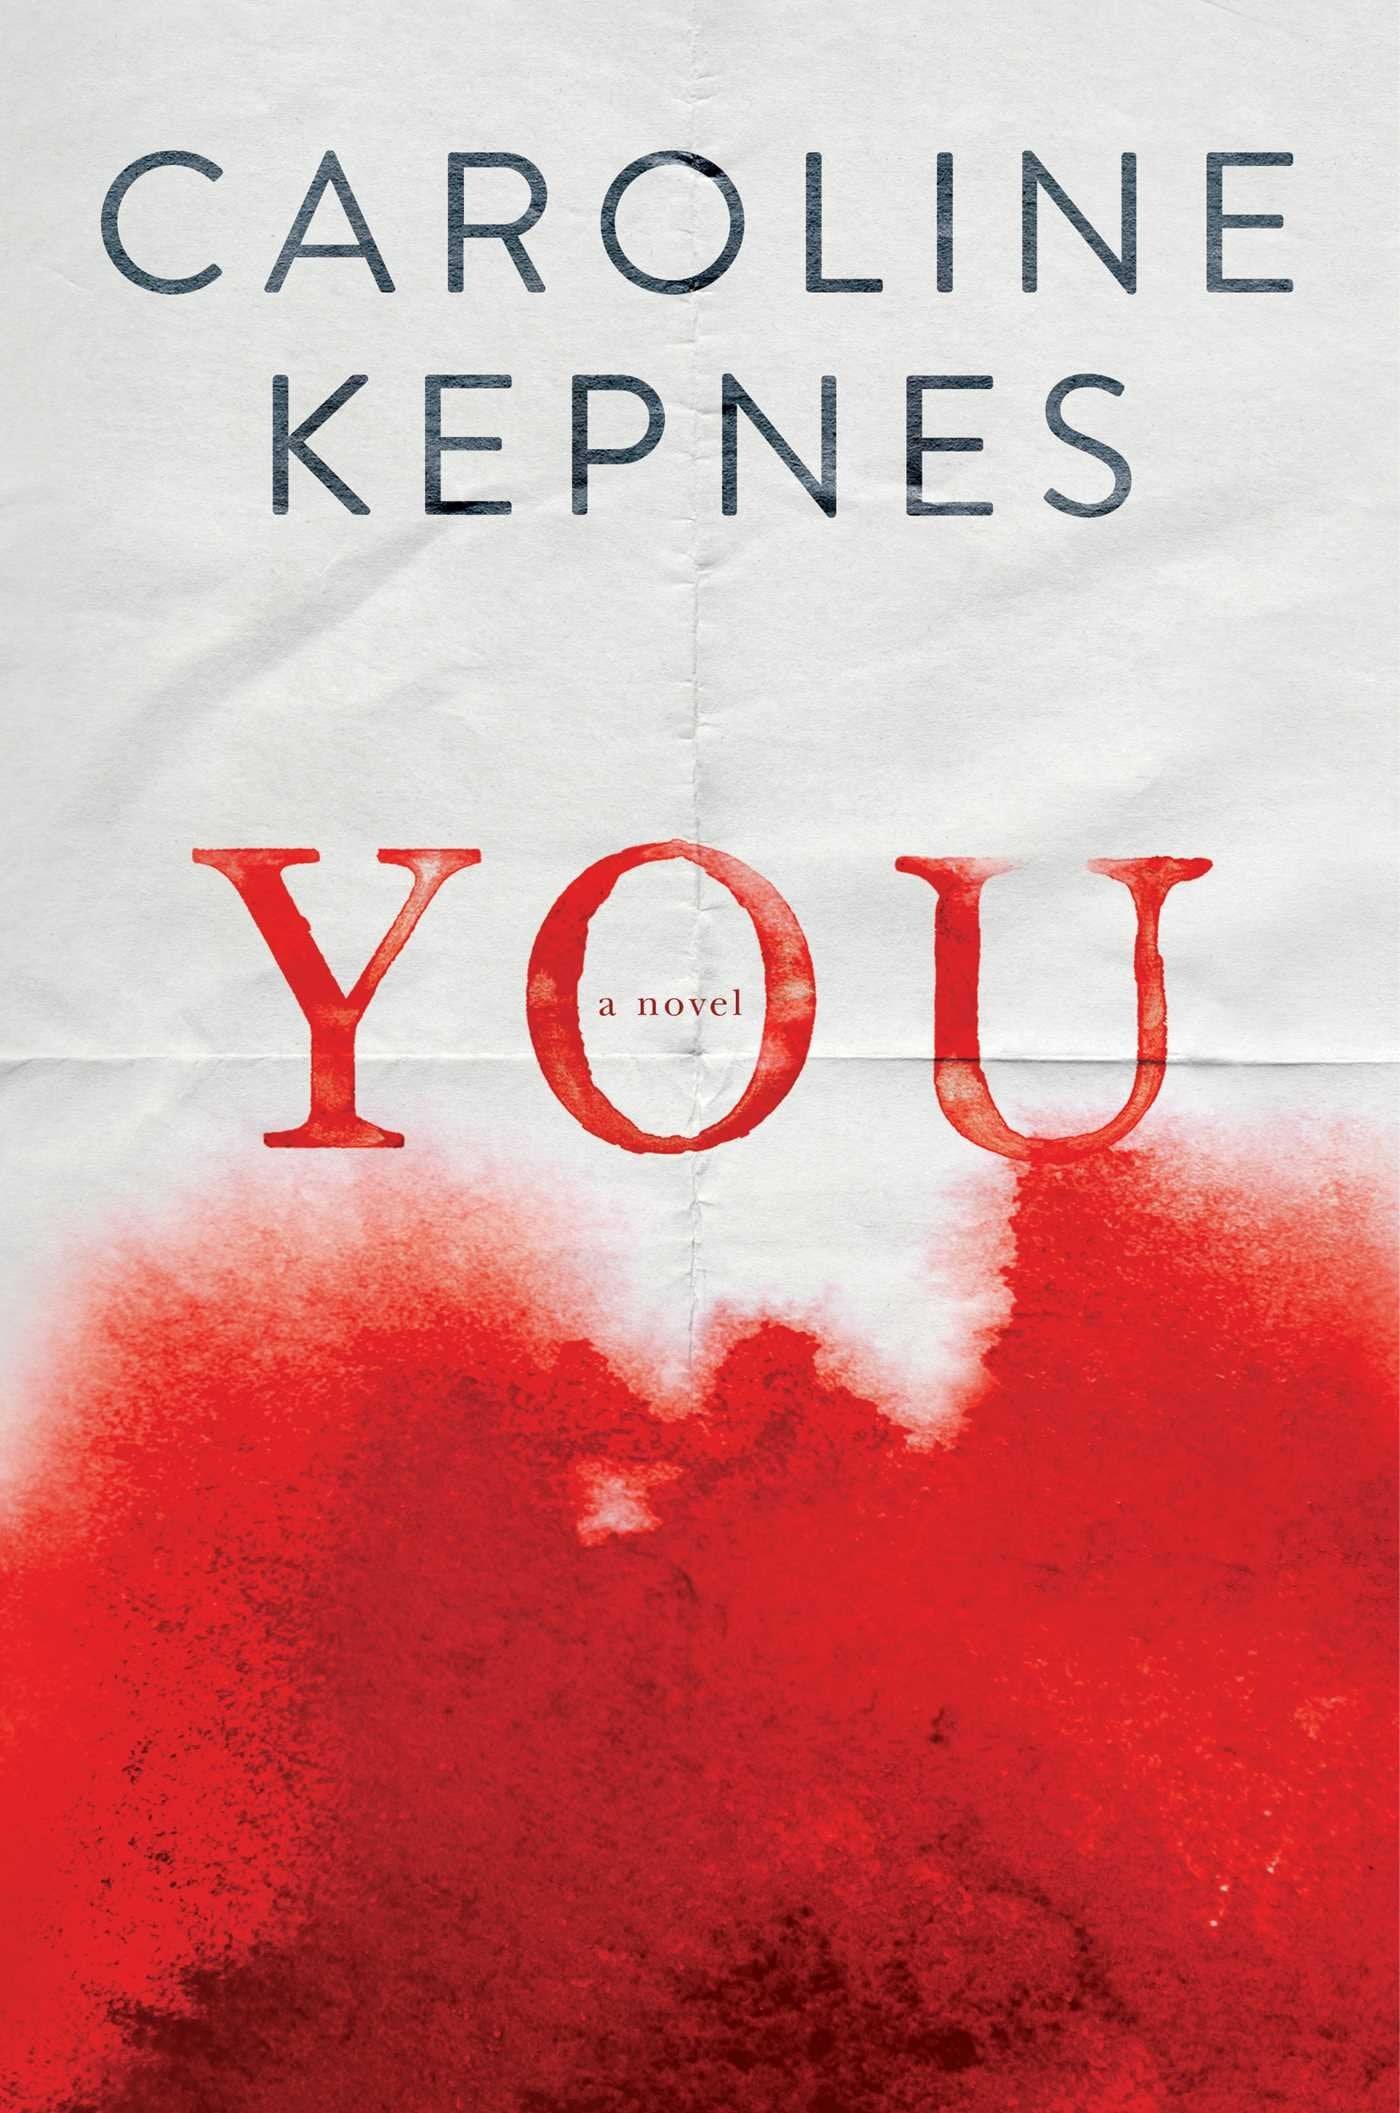 You Author Caroline Kepnes Interview - POPSUGAR Love & SexThe Sexy, Scary Summer Read That Has Stephen King's Stamp of Approval - 웹